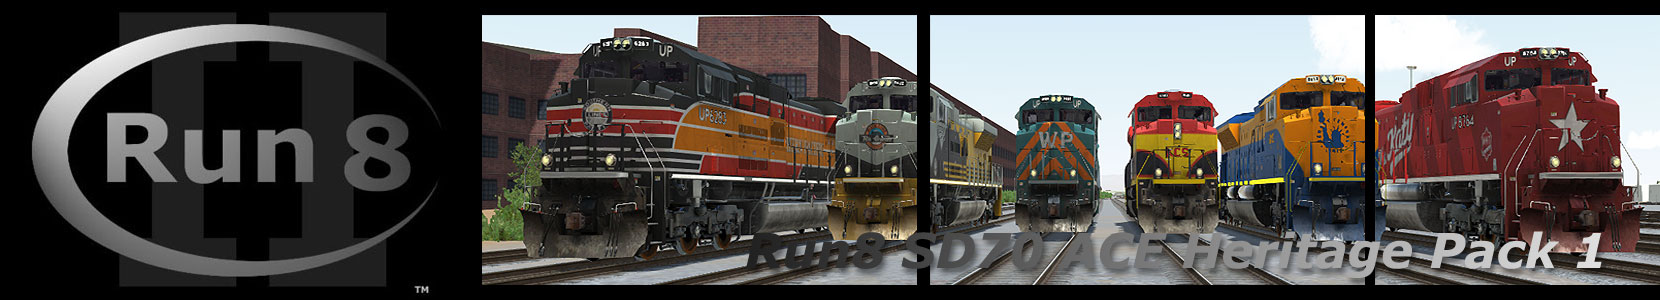 RUN8 SD70ACE HERITAGE PACK 1